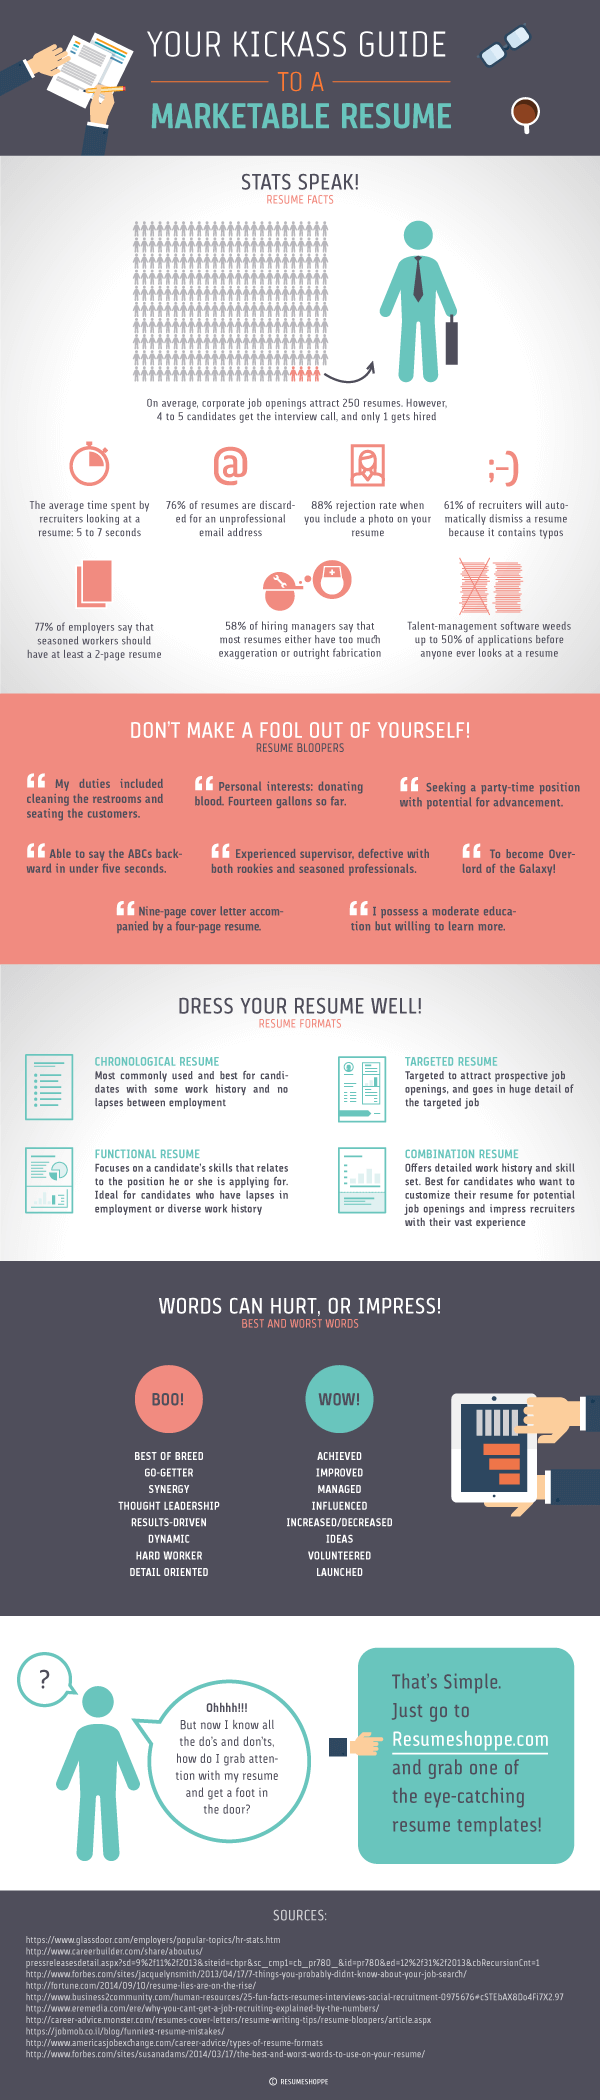 Your Kickass Guide To A Marketable Resume [Infographic] | Perfect ...